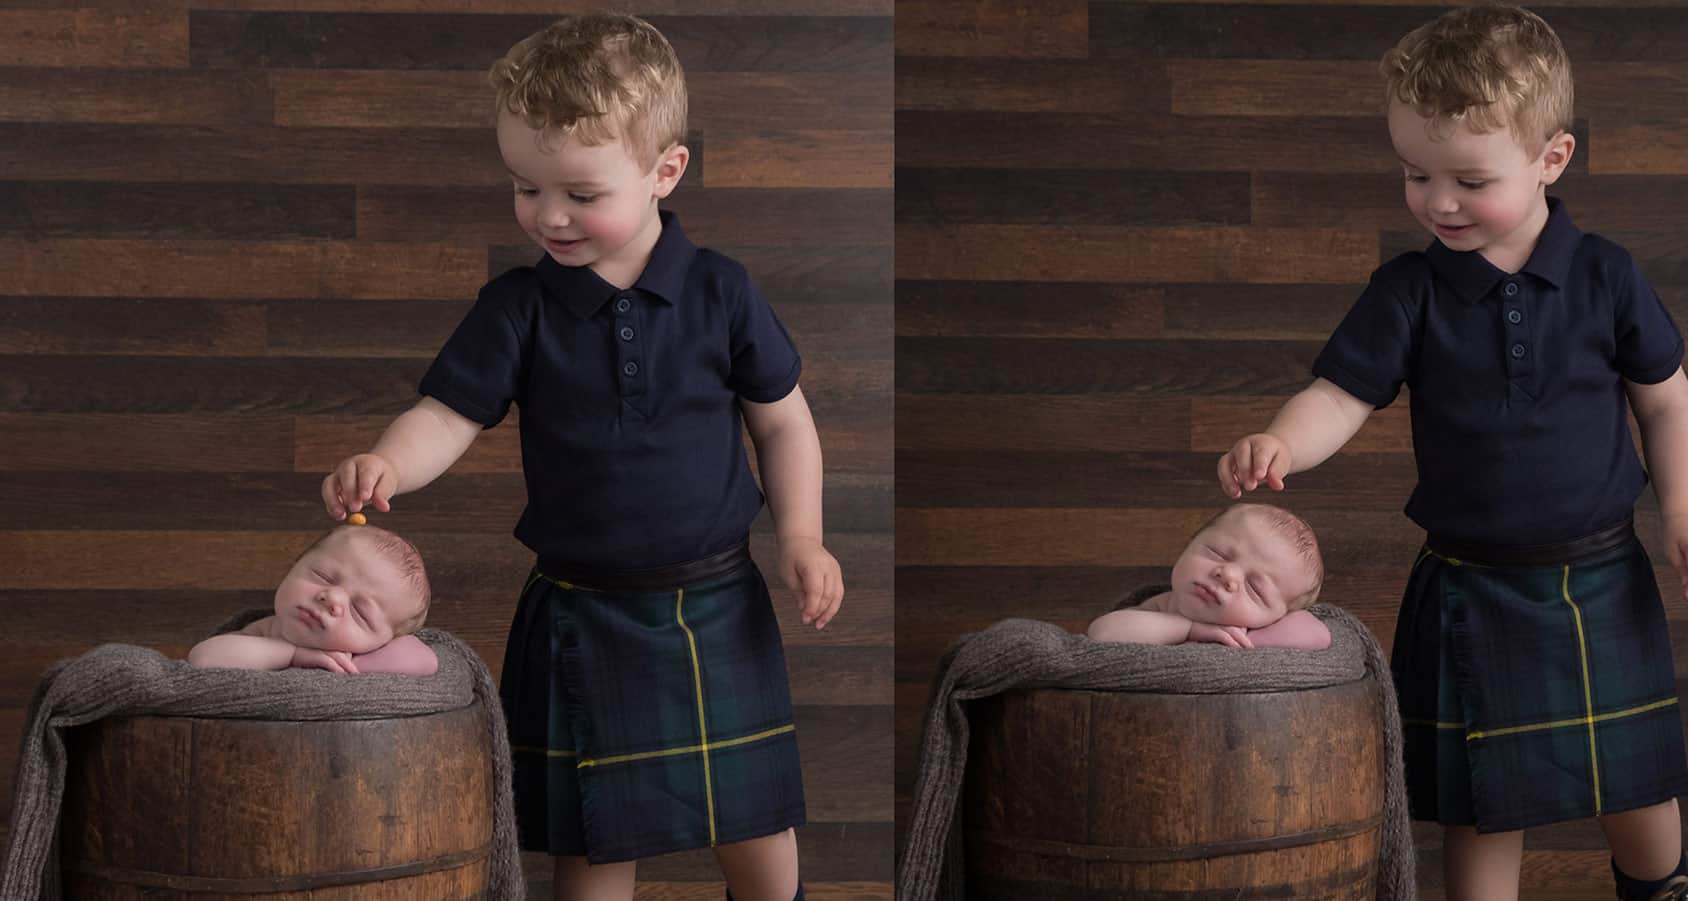 Sibling photos with newborn baby How-To Guide 11